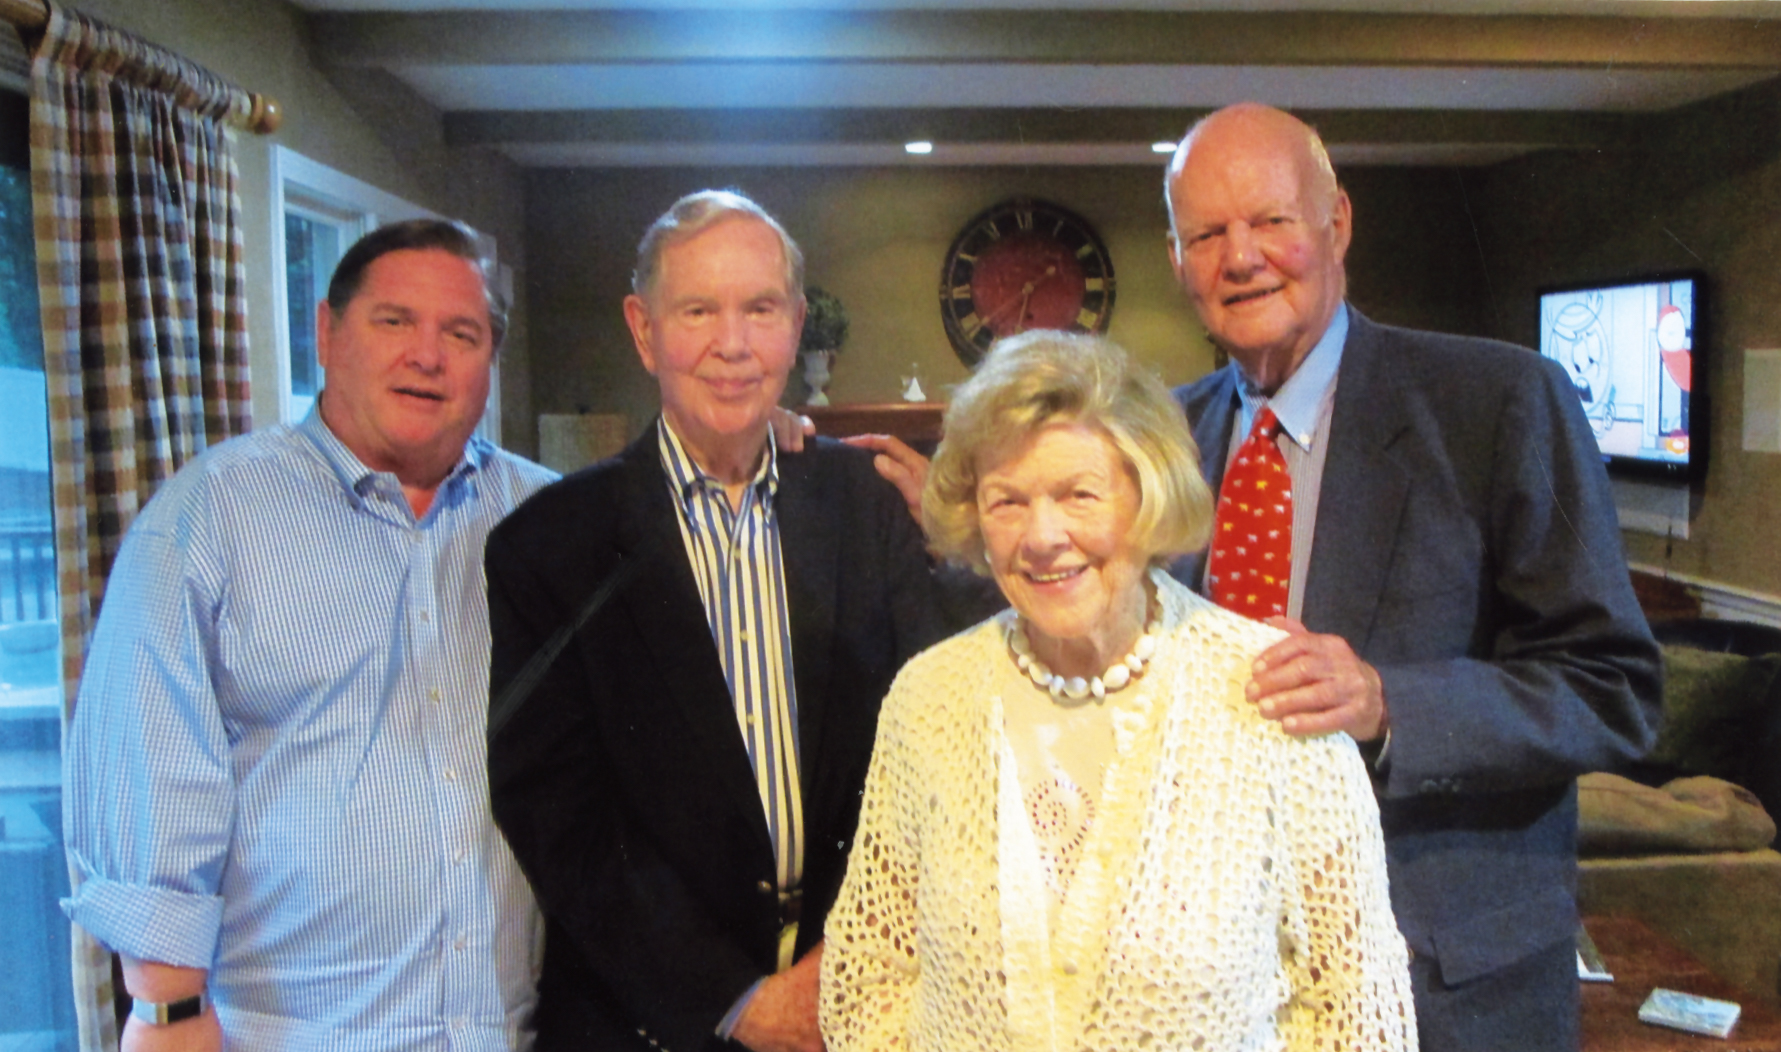 Quartie Clothier '50 celebrated his 85th birthday at his daughter's house in Hingham, Mass., with (l. to r.) Chip Clothier '75, Quartie, wife Barbara, and Dick Paine '50.